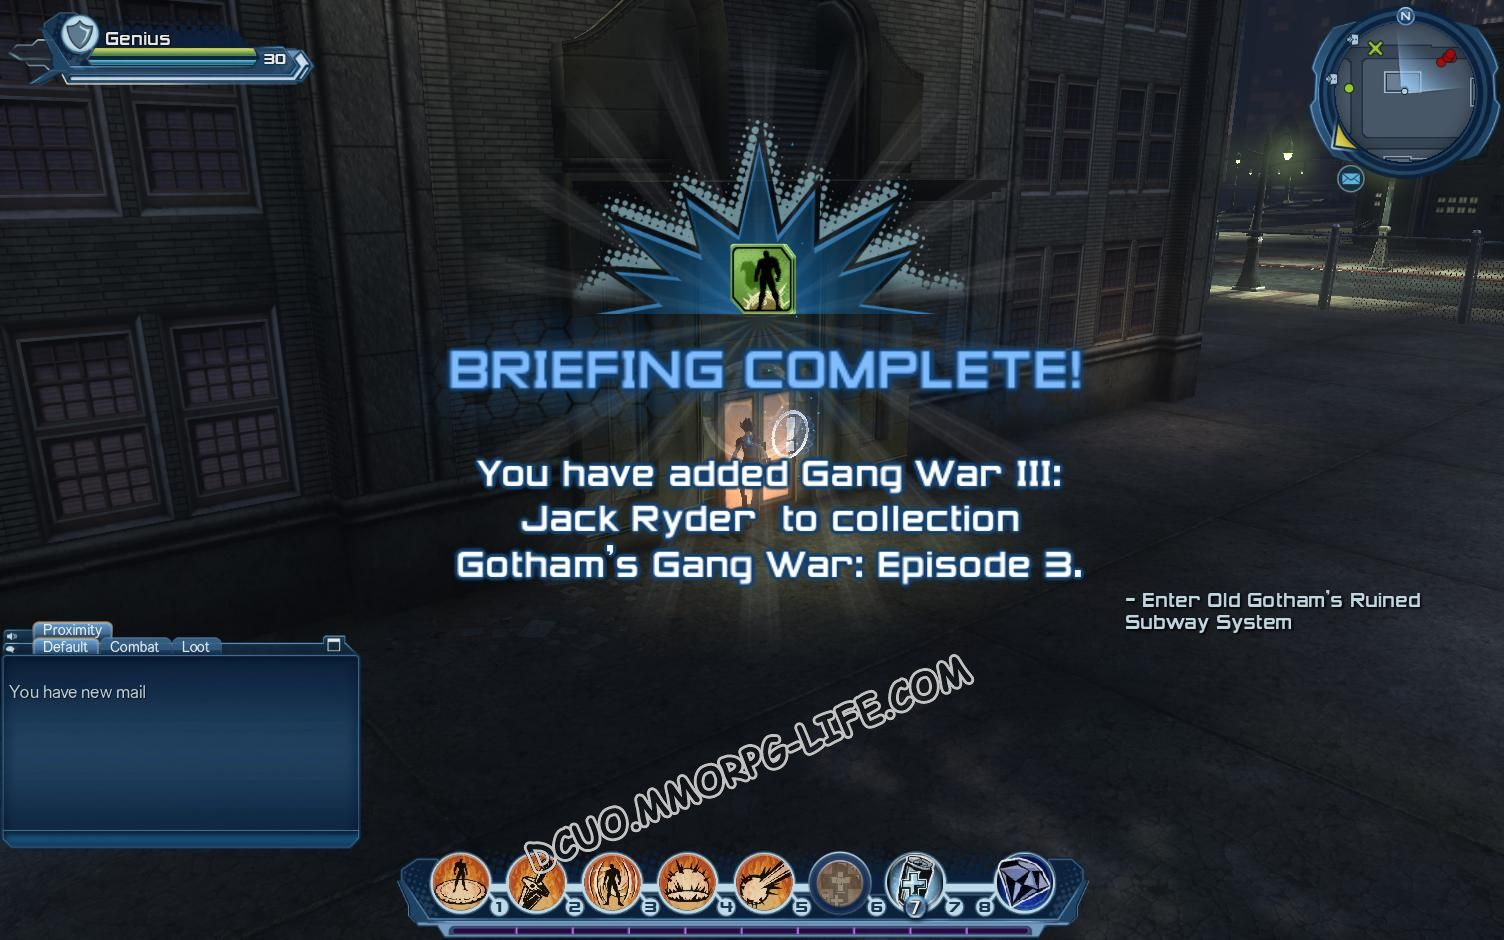 Briefing: Gotham's Gang War: Episode 3, step 5 Gang War III: Jack Ryder  image 2330 middle size